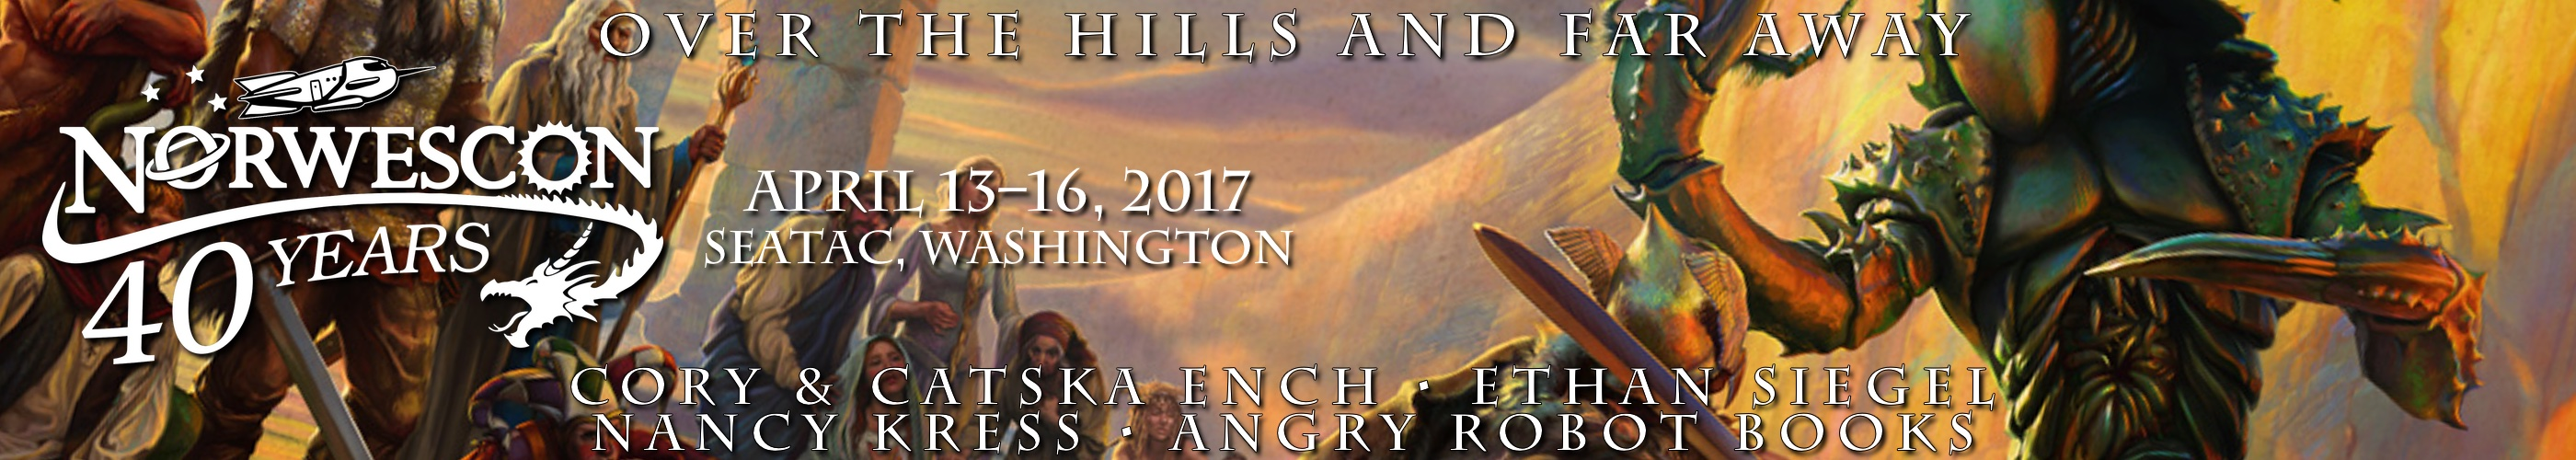 Norwescon 40: Over the Hills and Far Away